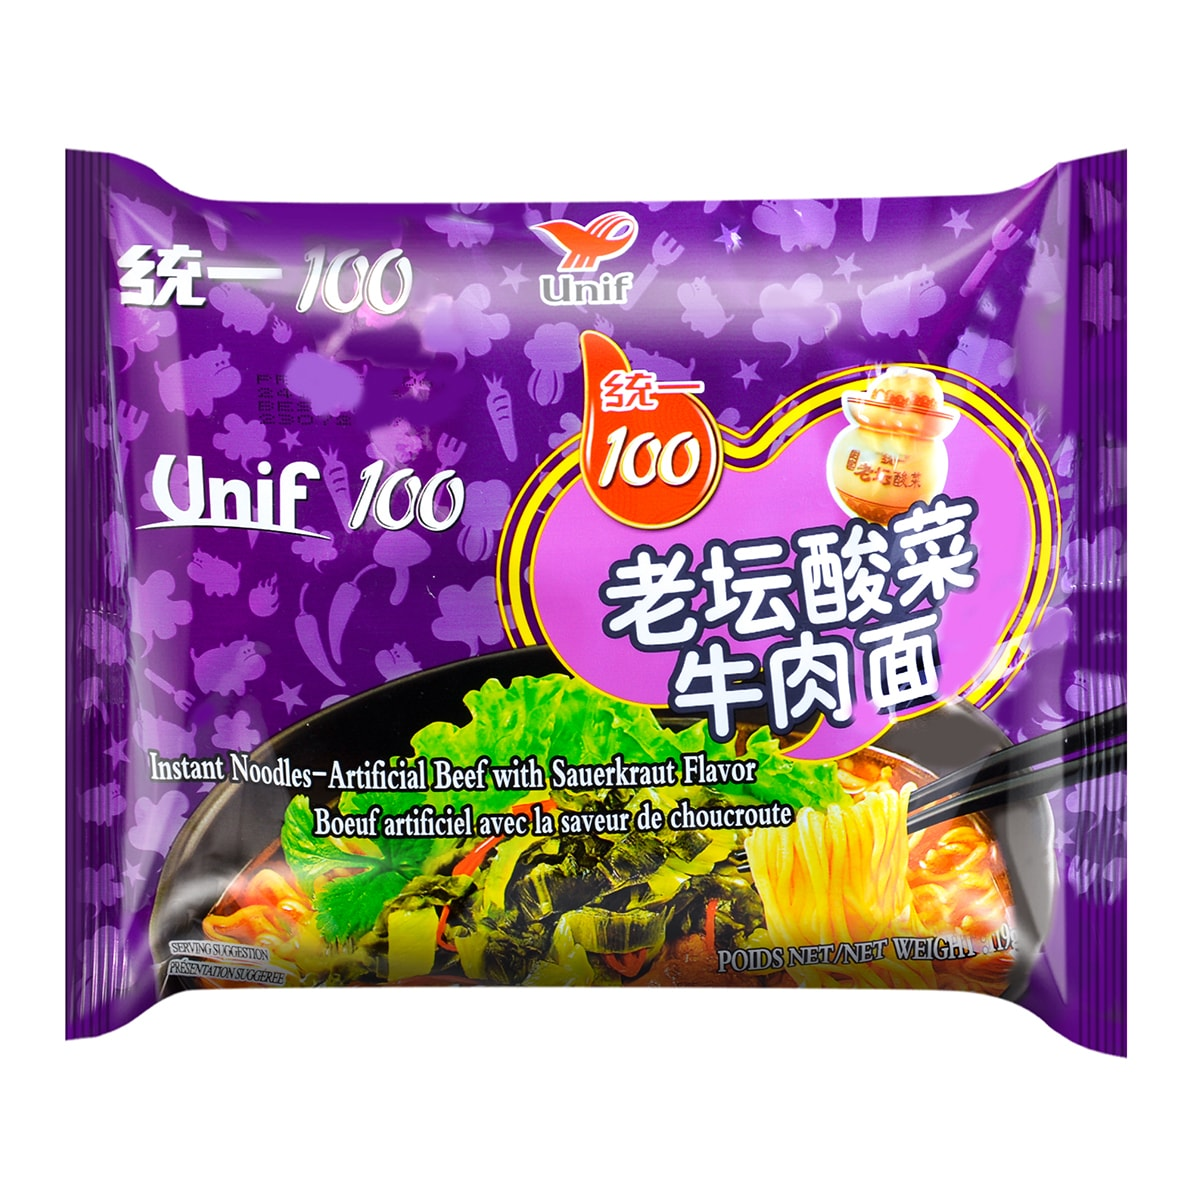 Yamibuy.com:Customer reviews:UNIF 100 Instant Noodle Artificial Beef with Sauerkraut Flavor 119g